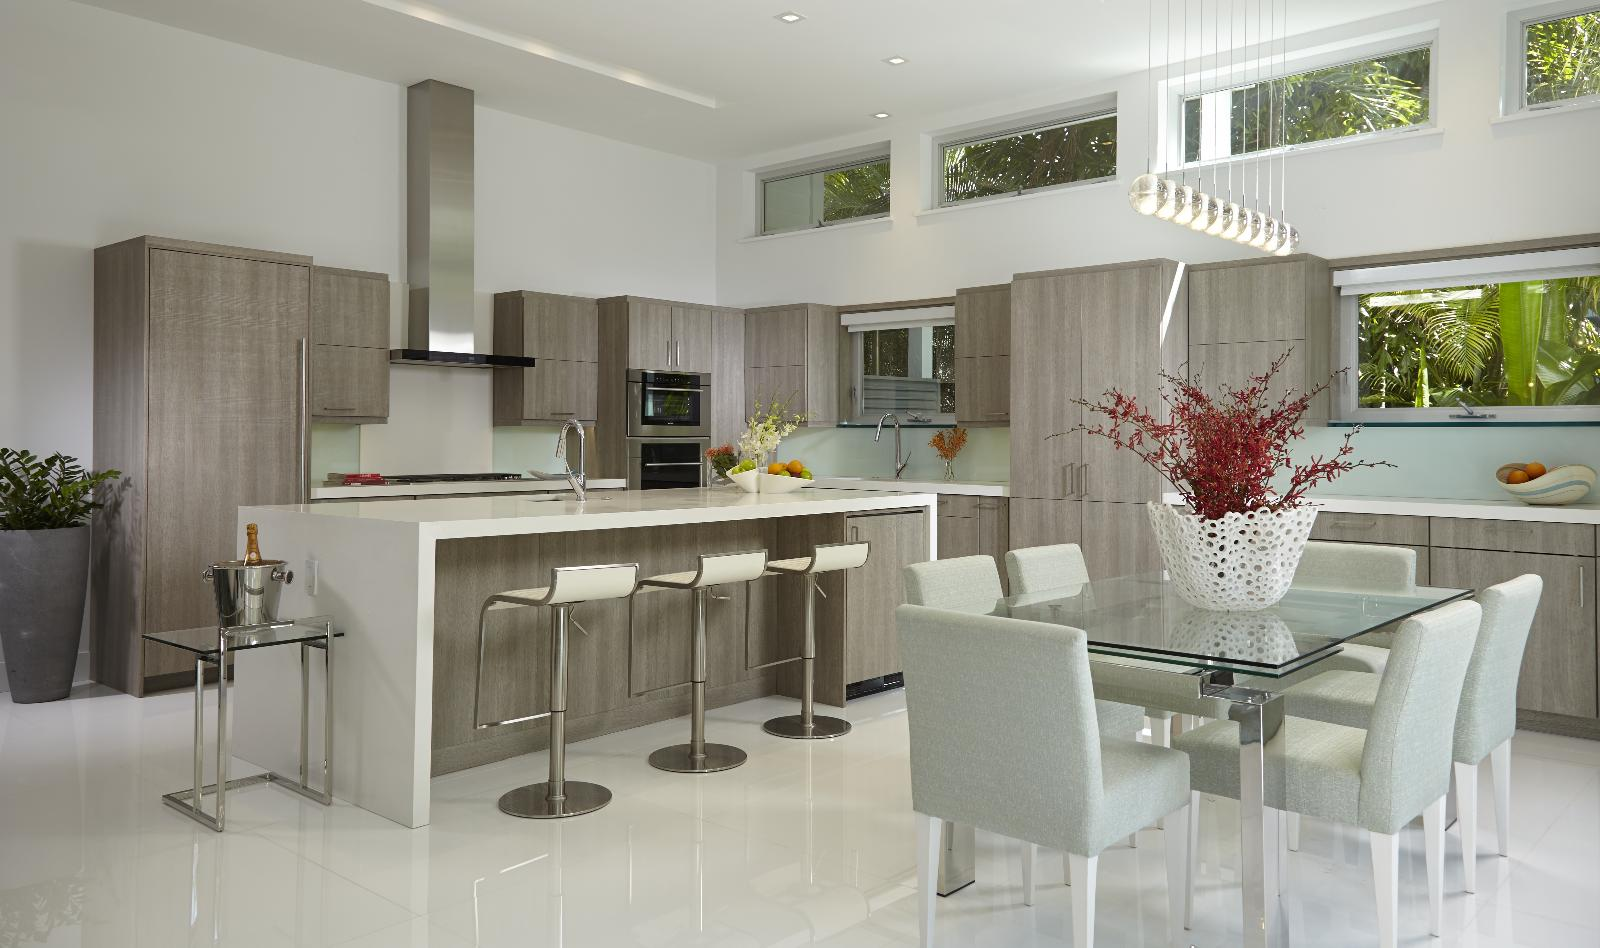 Kitchen interior design services miami florida Baker group kitchen design